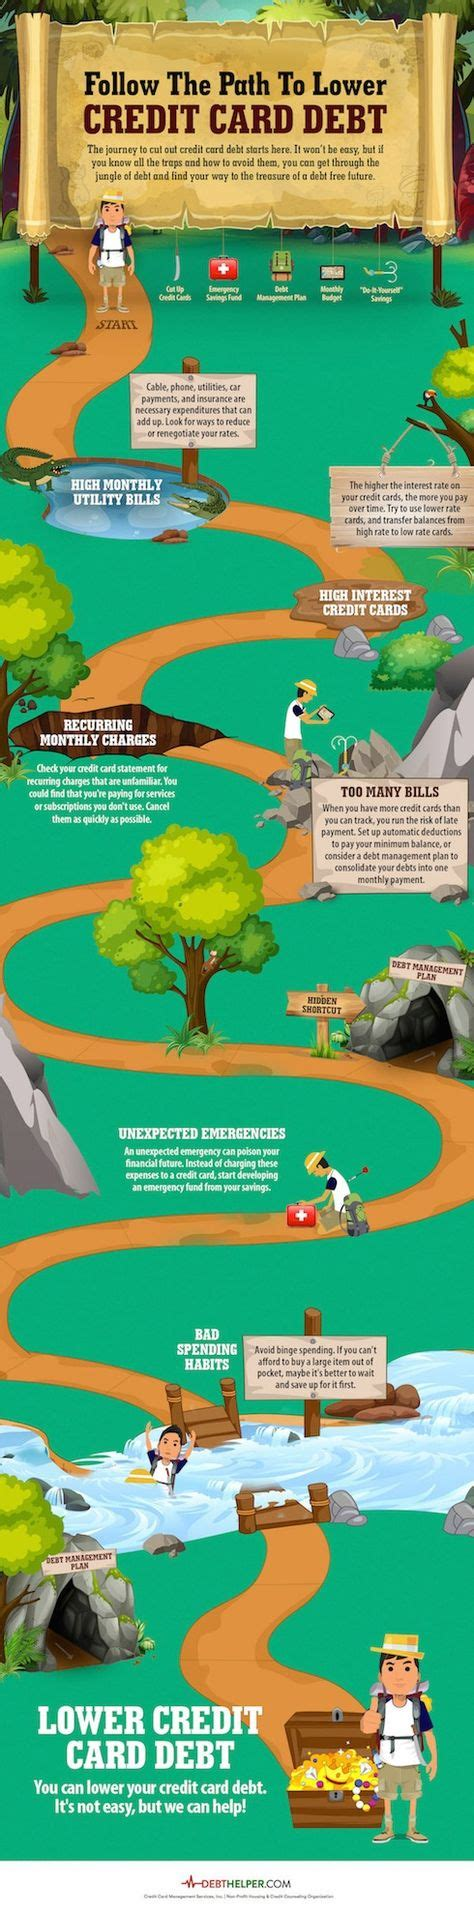 How to reduce interest on credit card debt. Infographic: The Path To Lower Credit Card Debt Showing the Pitfalls of Debt | Credit card ...